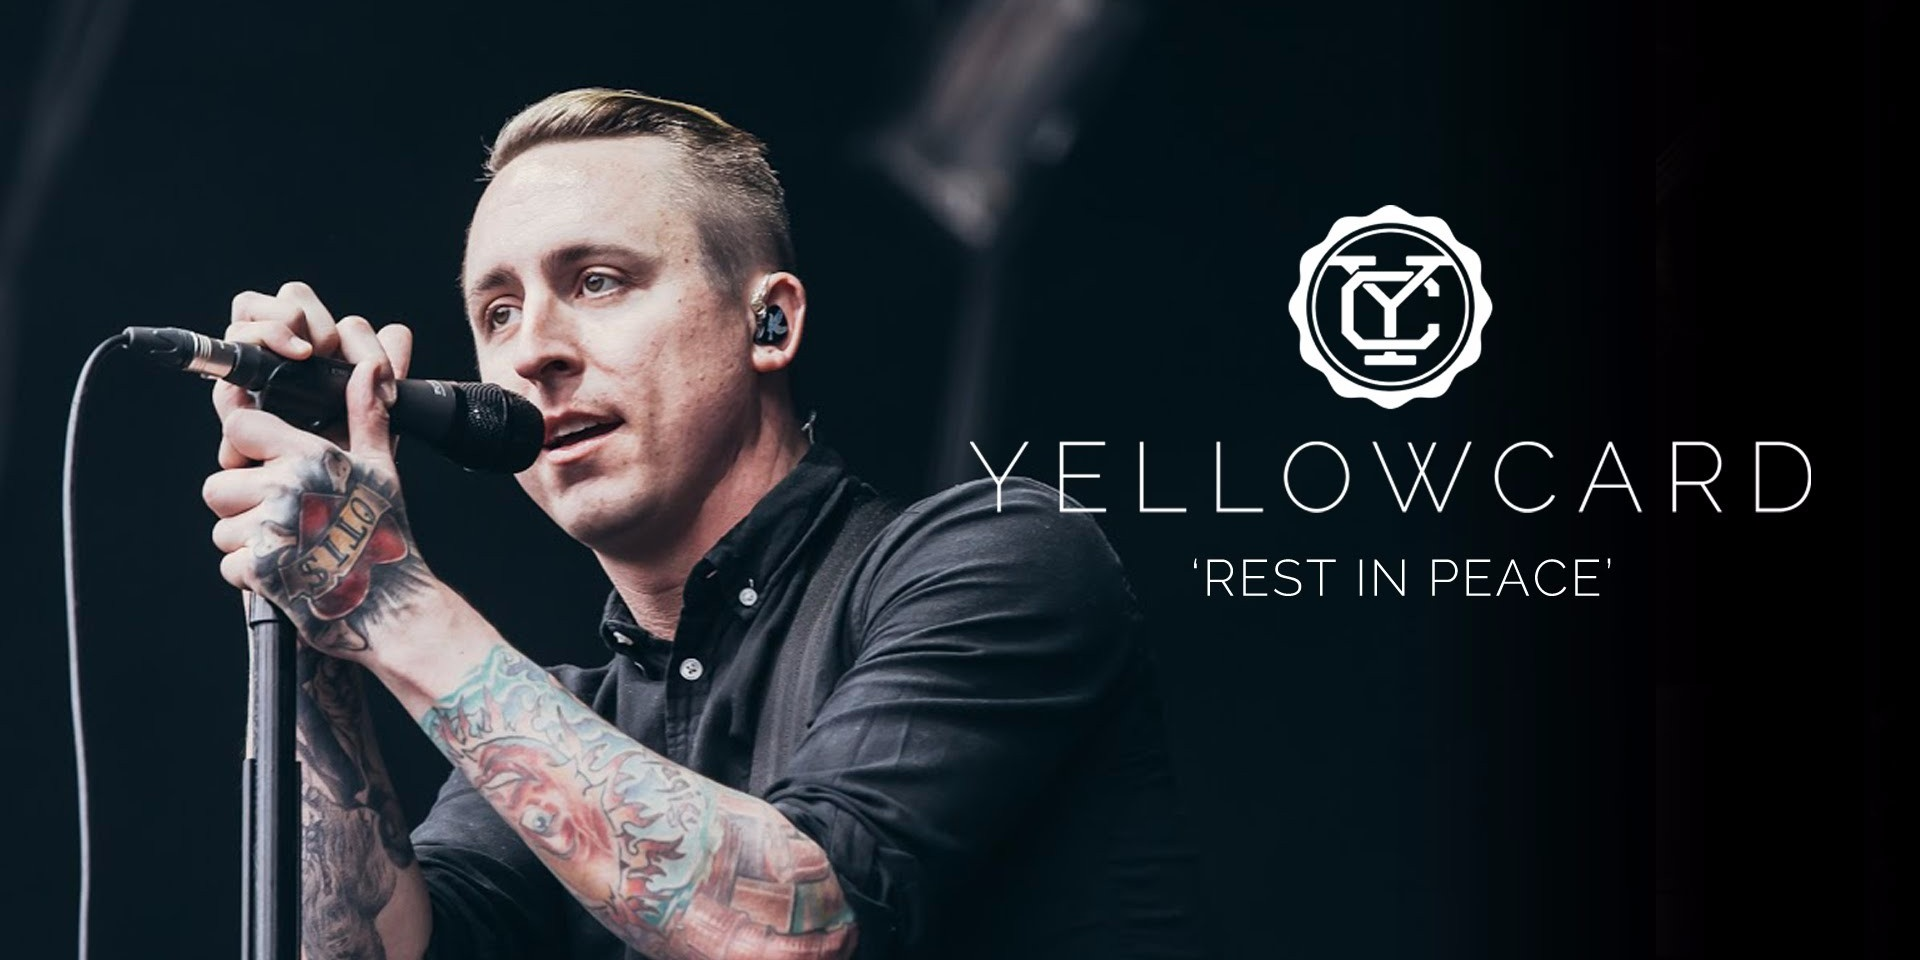 WATCH: Spot yourself in the new (and supposedly last) Yellowcard music video